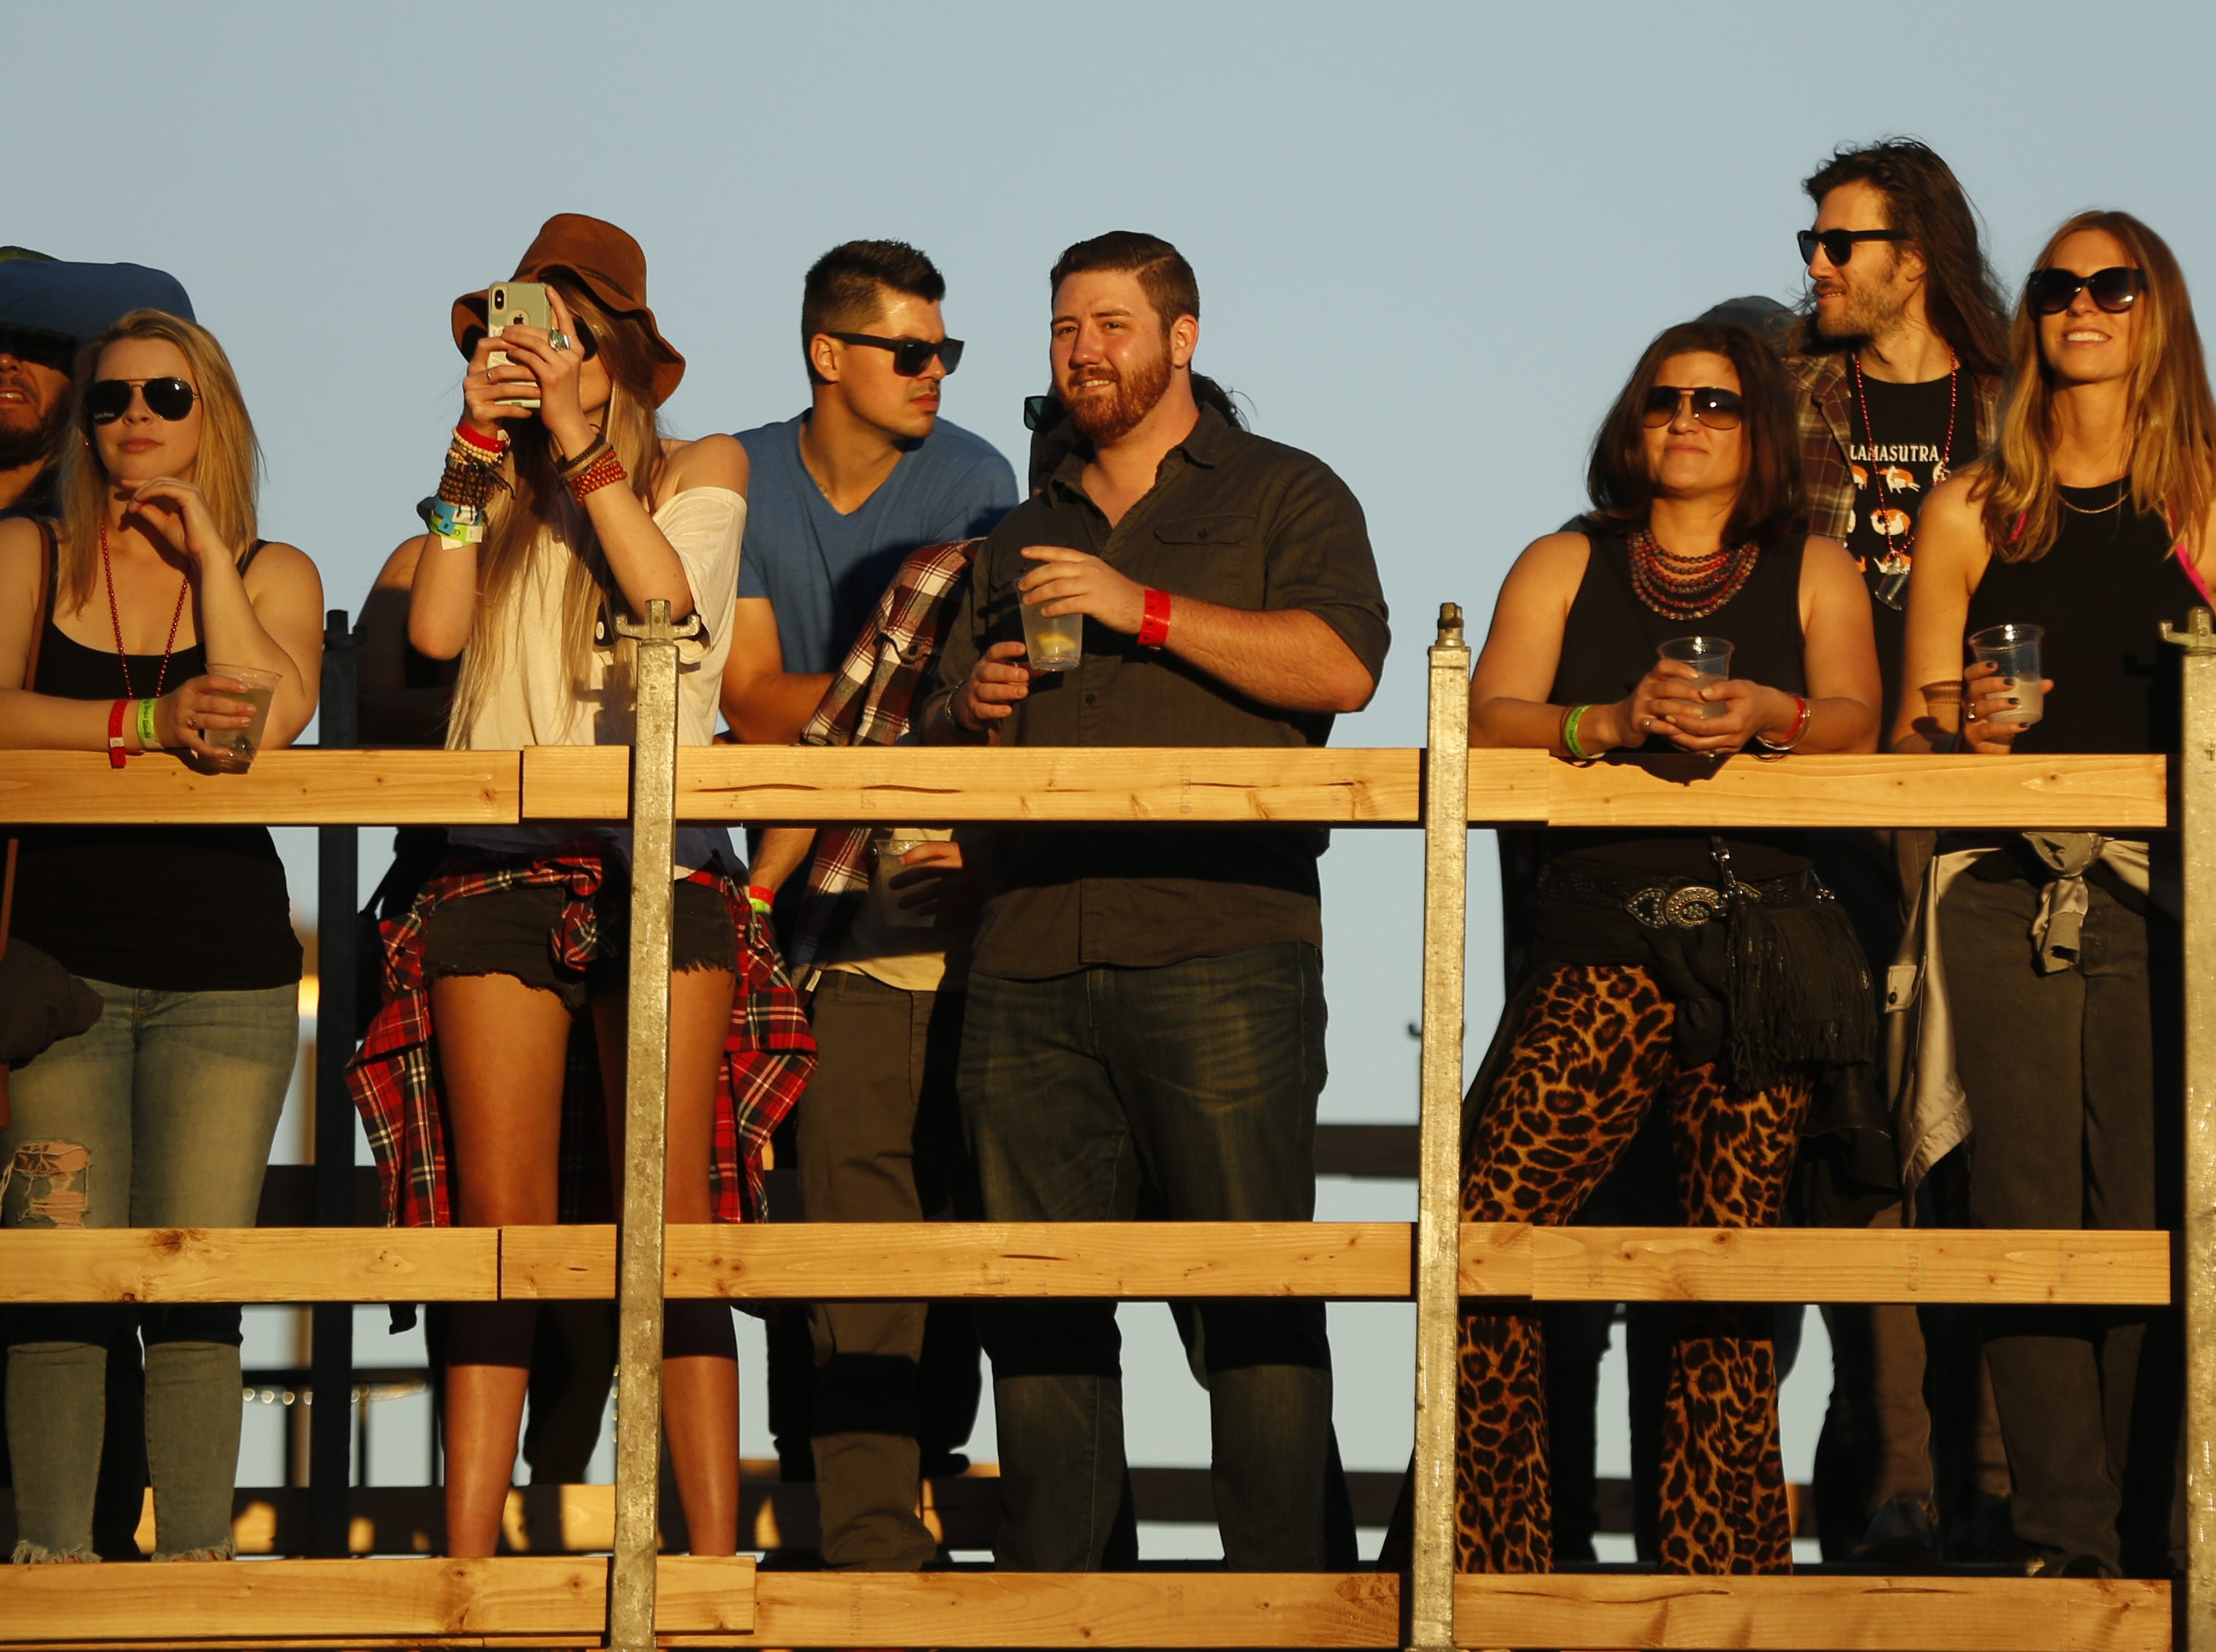 Fans listen to Kurt Vile and The Violators perform during the McDowell Mountain Music Festival in Phoenix on March 2, 2019.